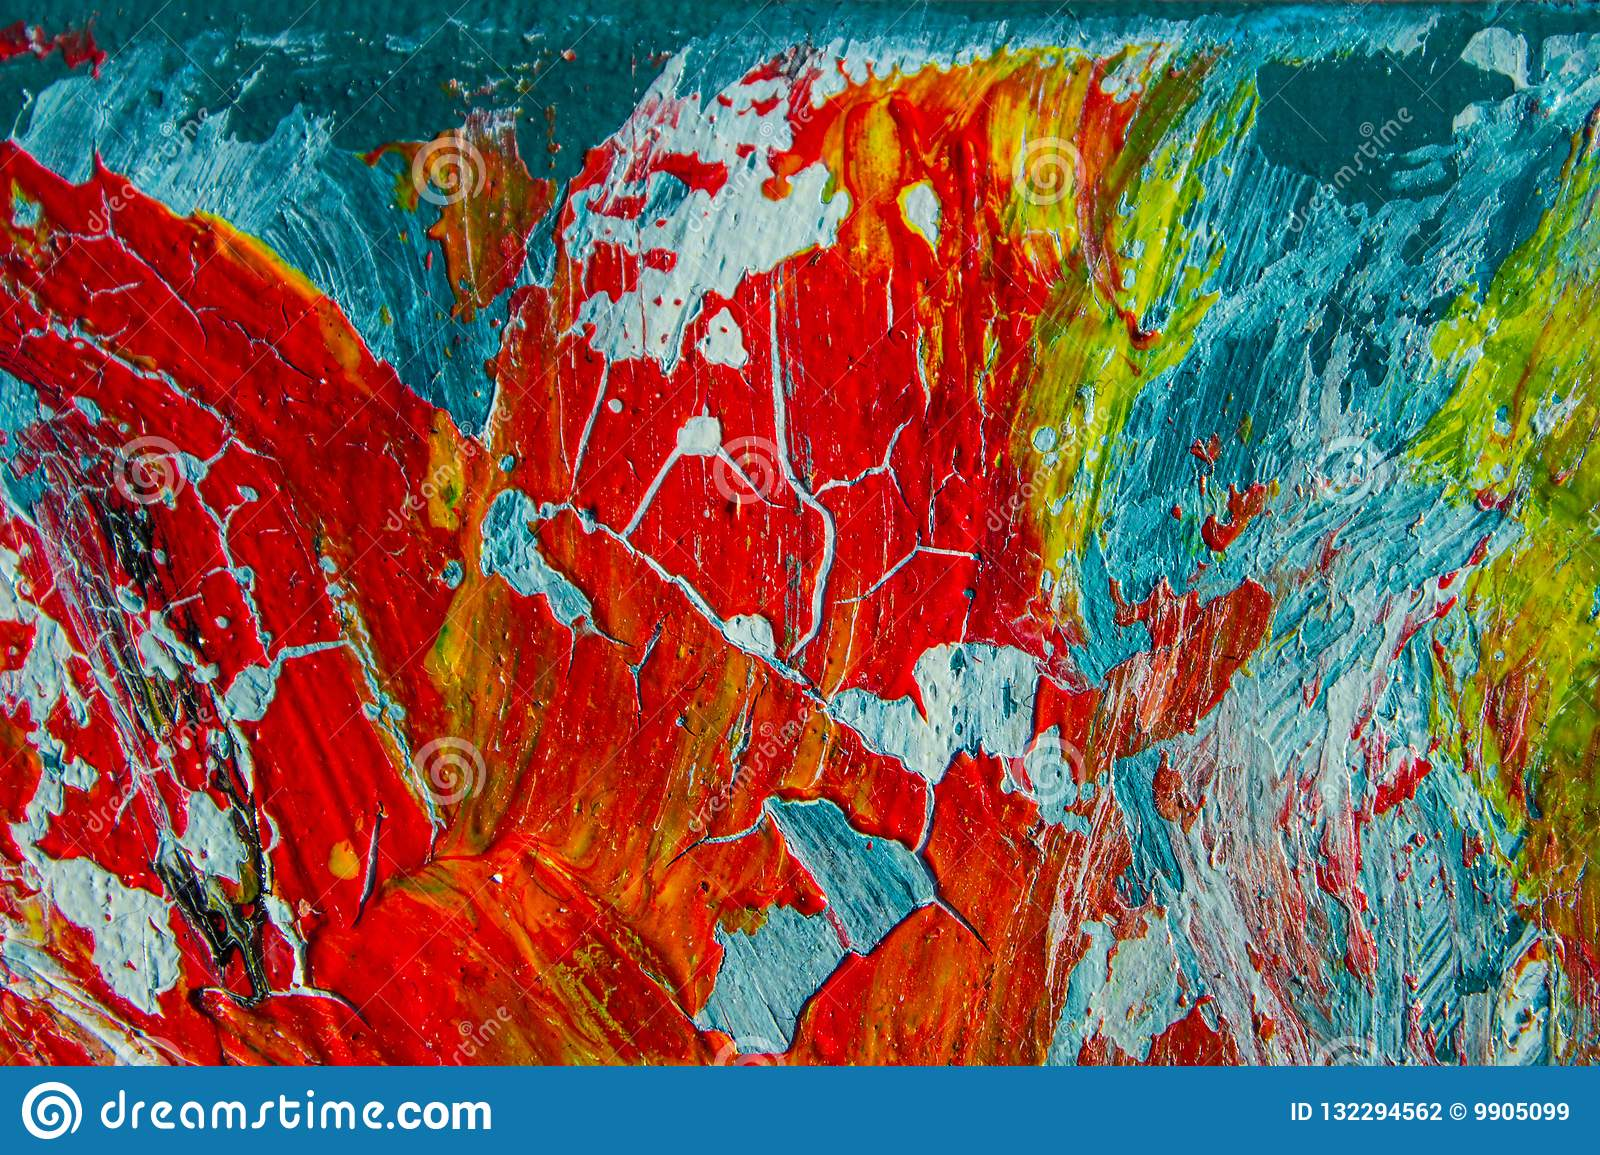 Art oil painting background abstraction fire